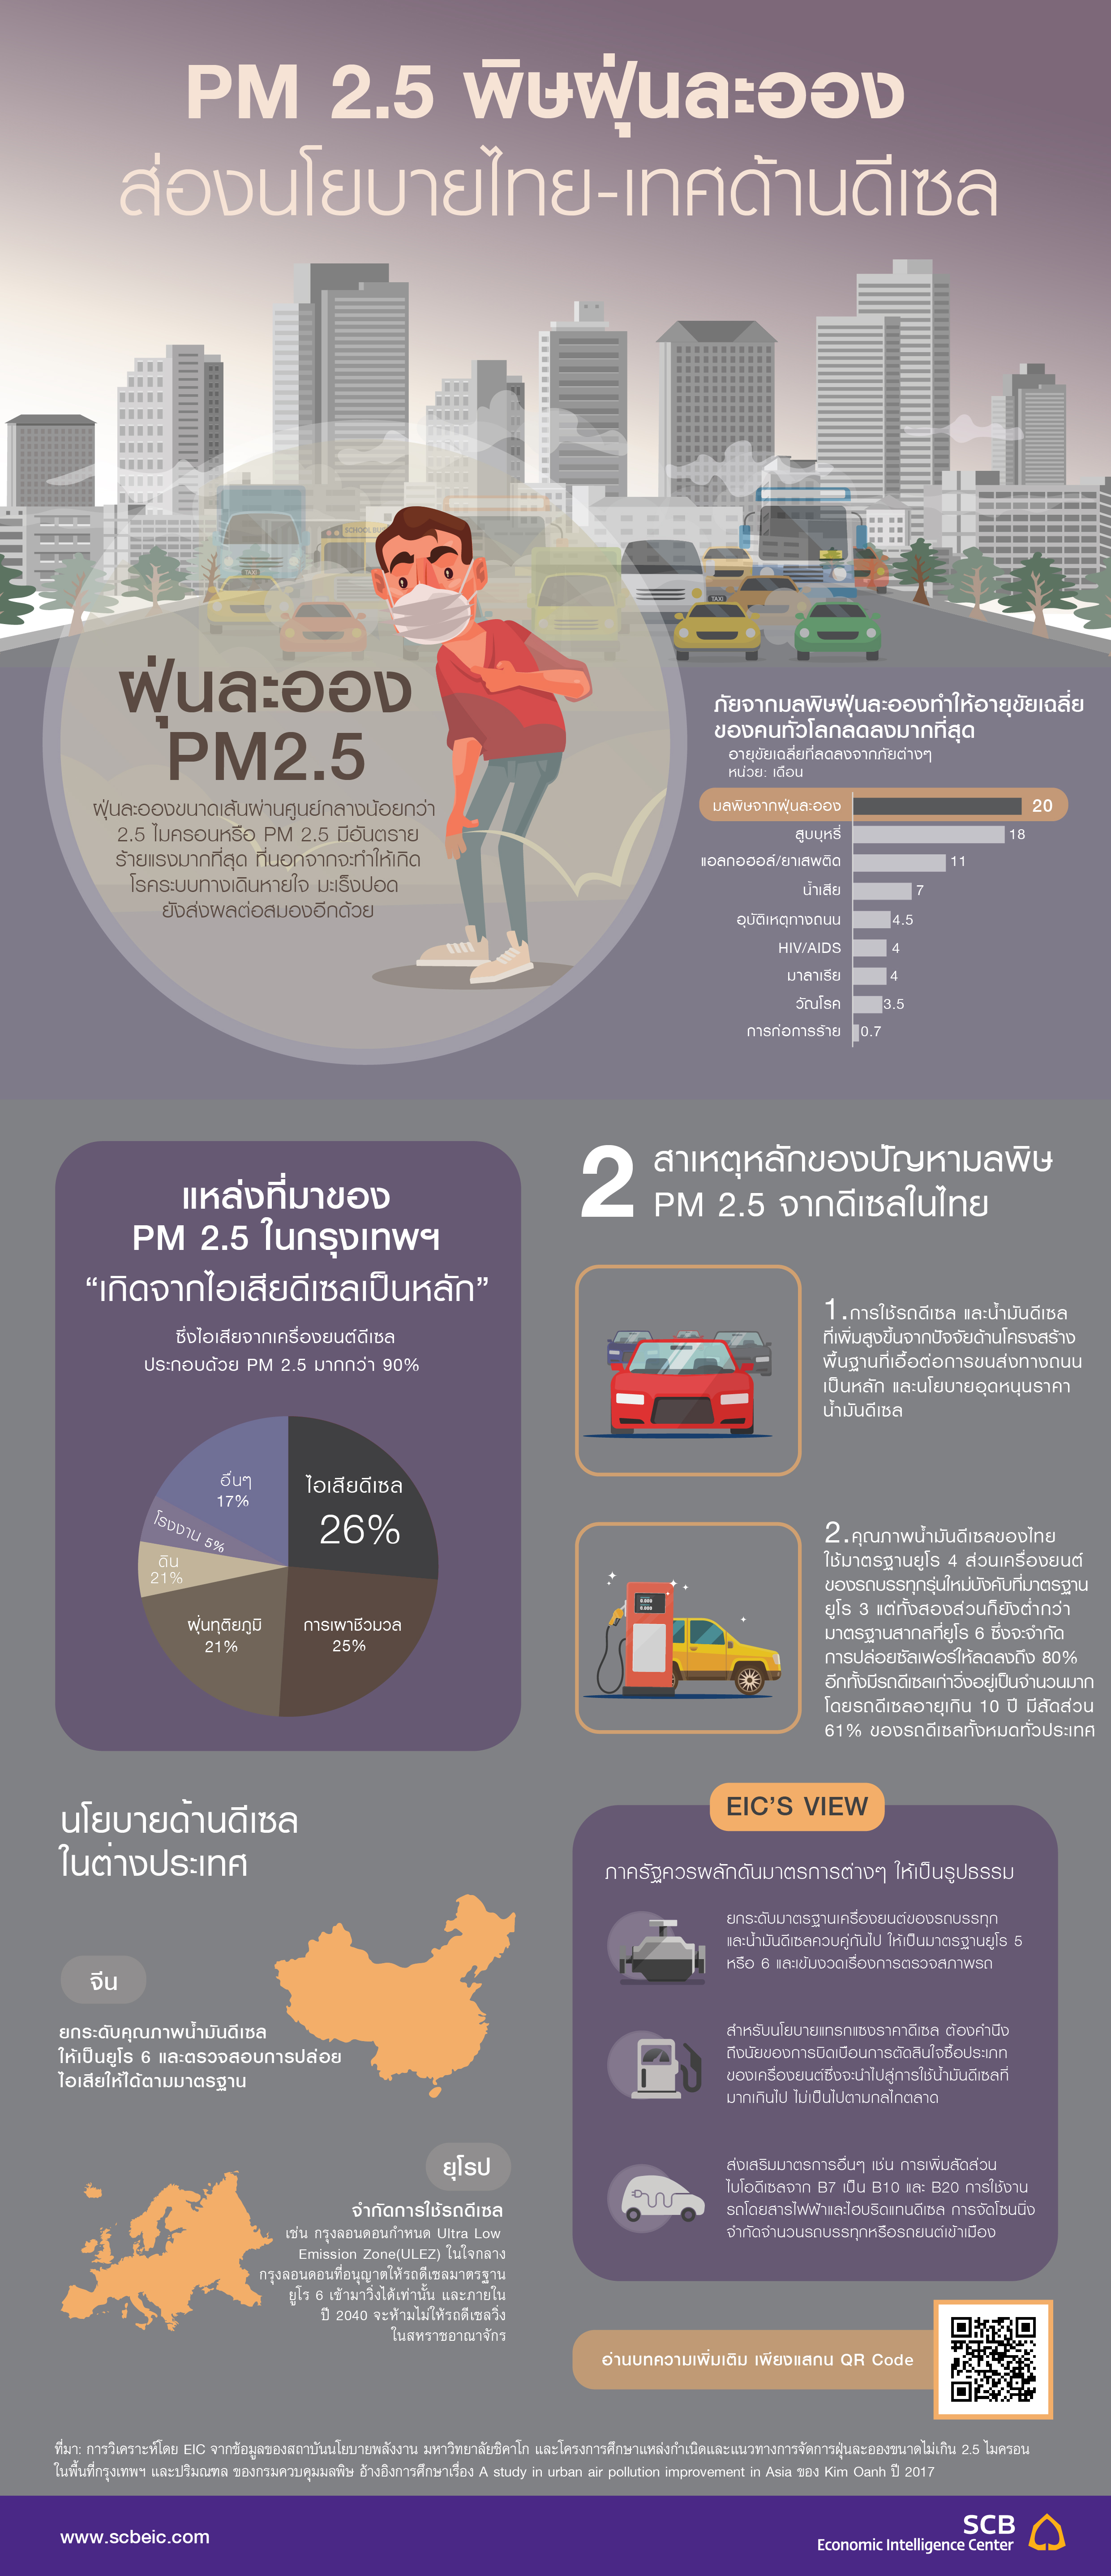 EIC_Infographic_PM2.5_20180131-01.jpg